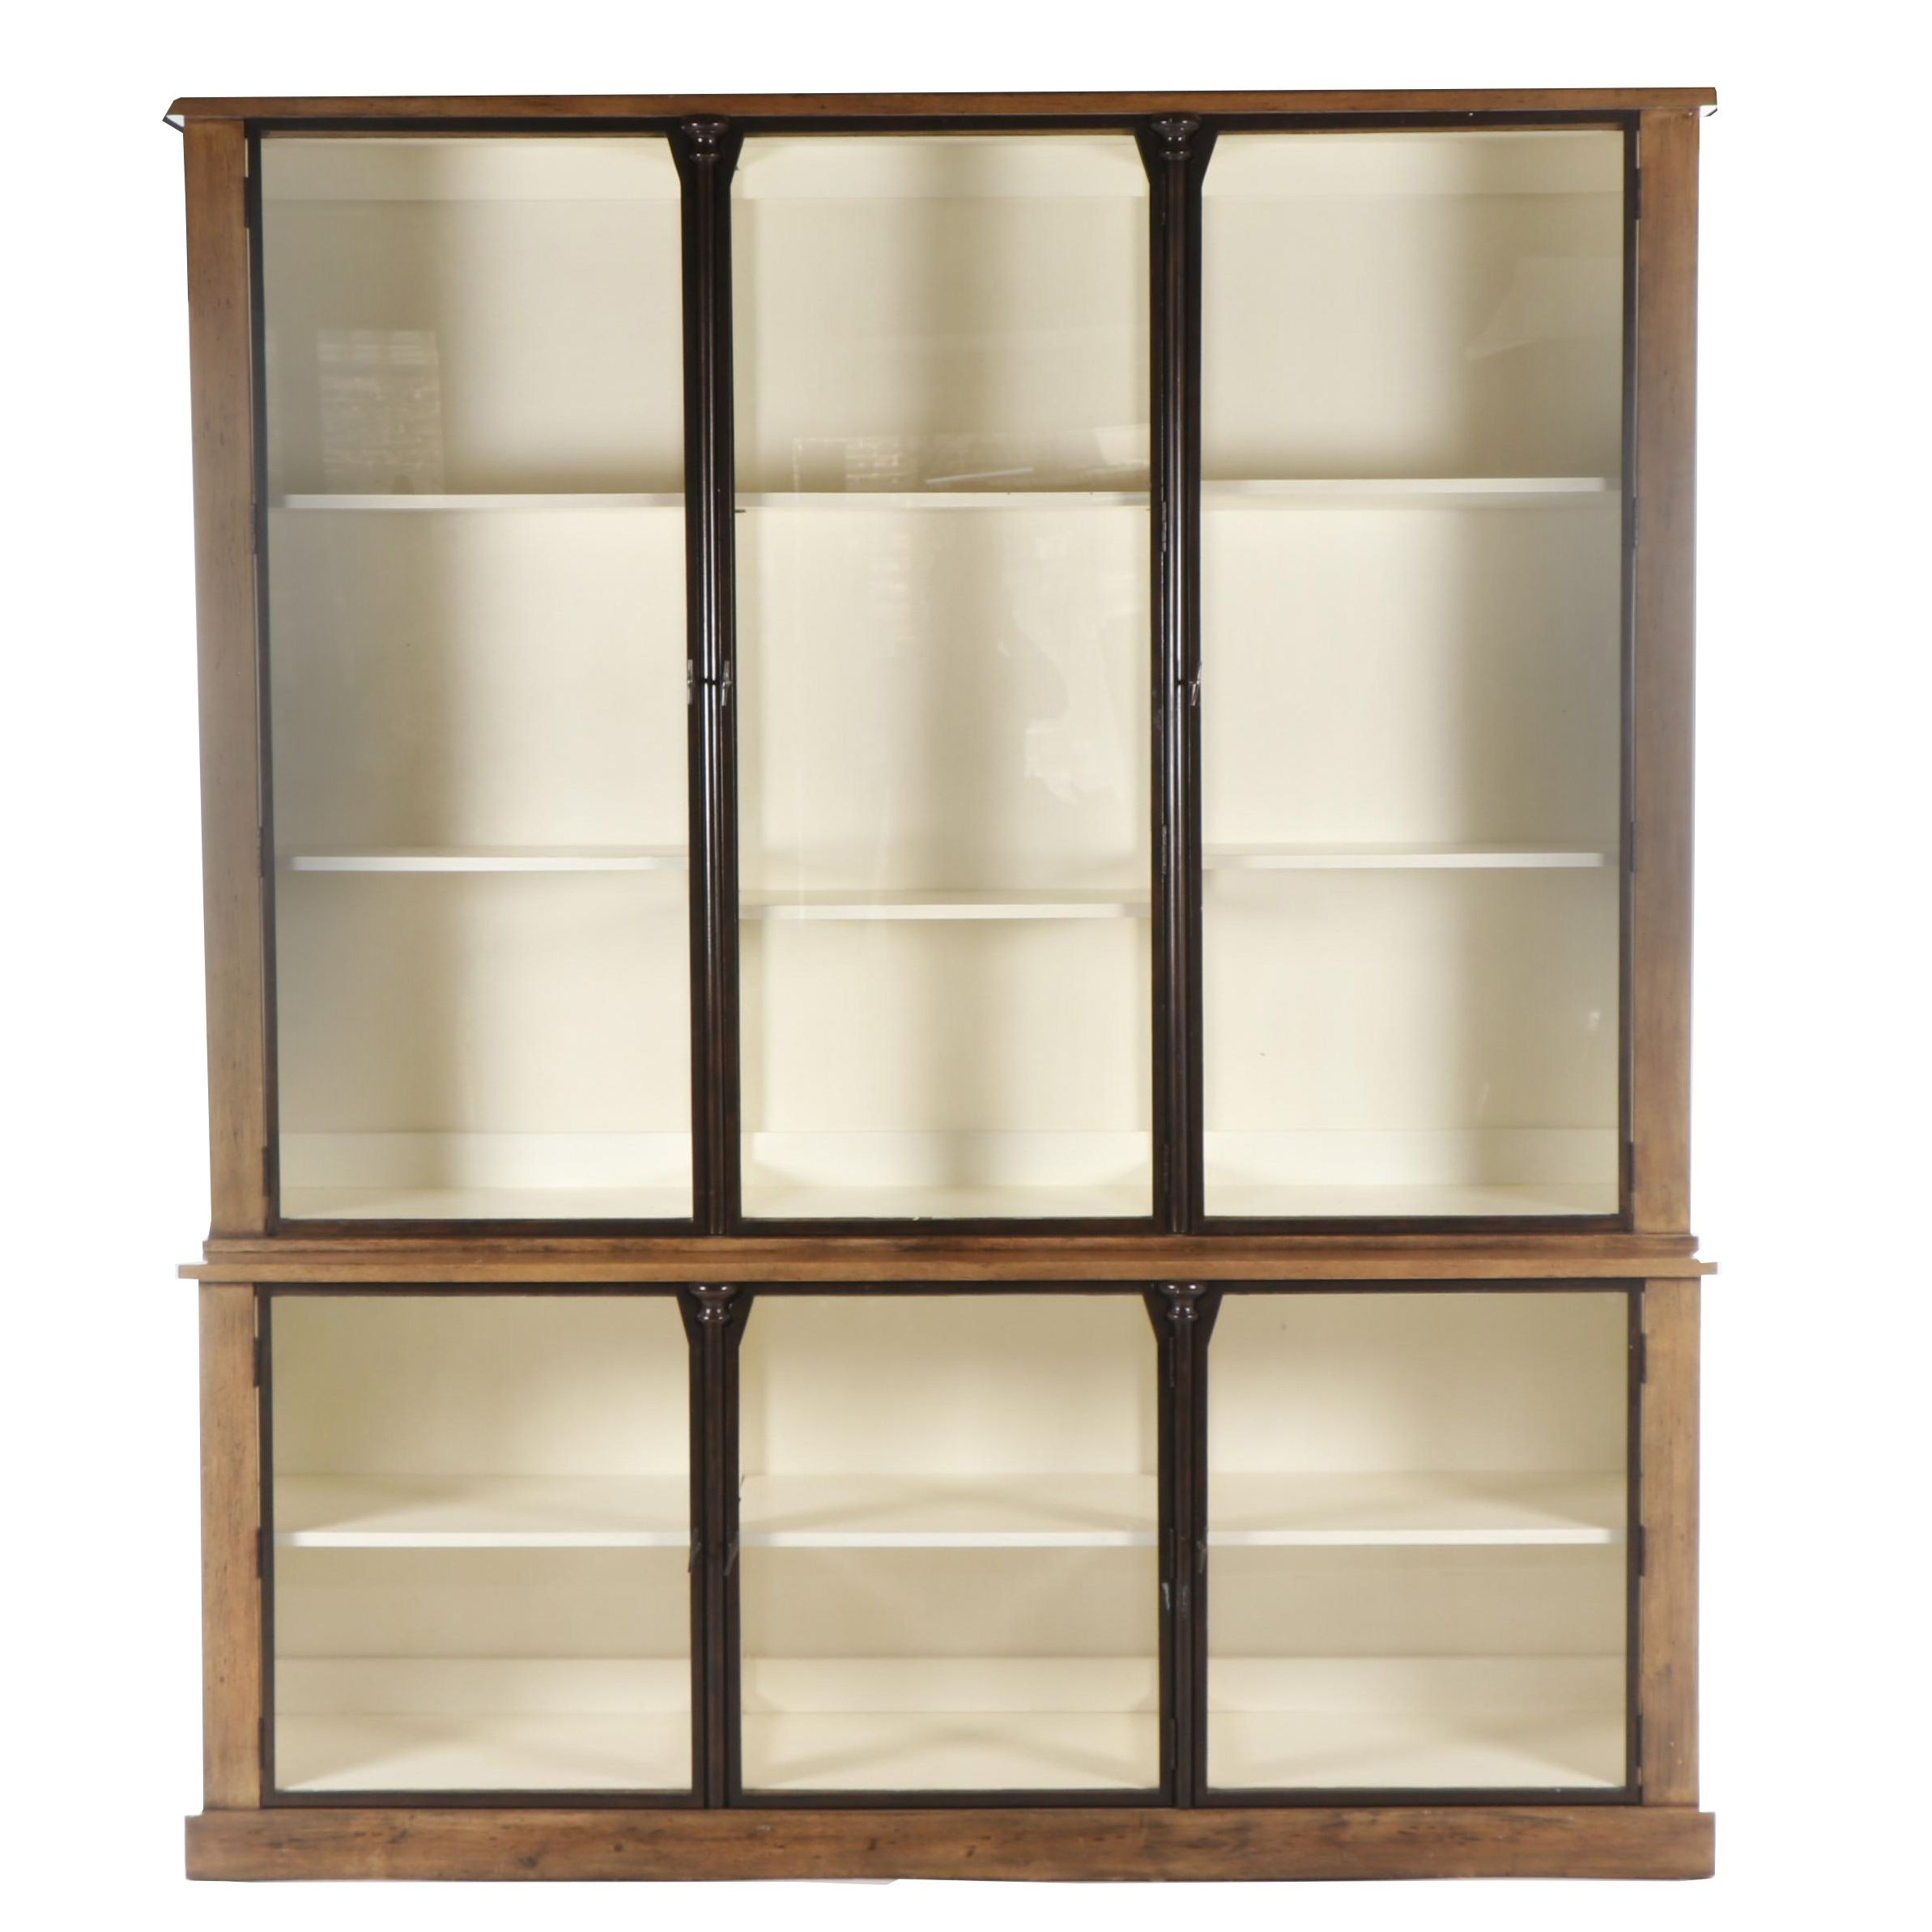 Large Contemporary Wooden Display Cabinet with Glass Doors